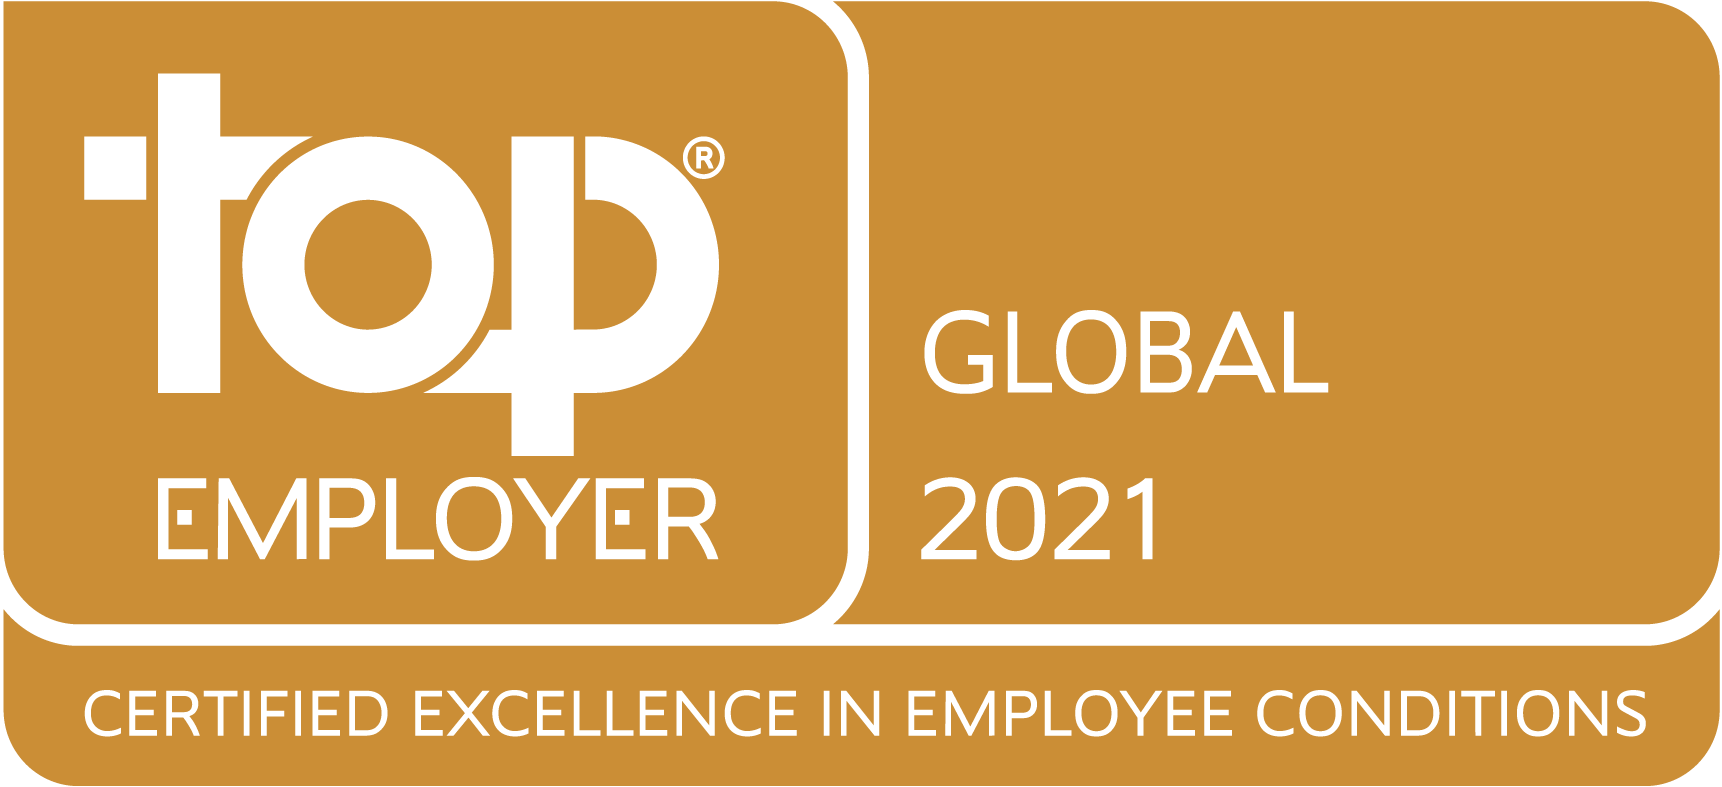 Top Employer - Global 2019. Certified Excellence in Employee Conditions.